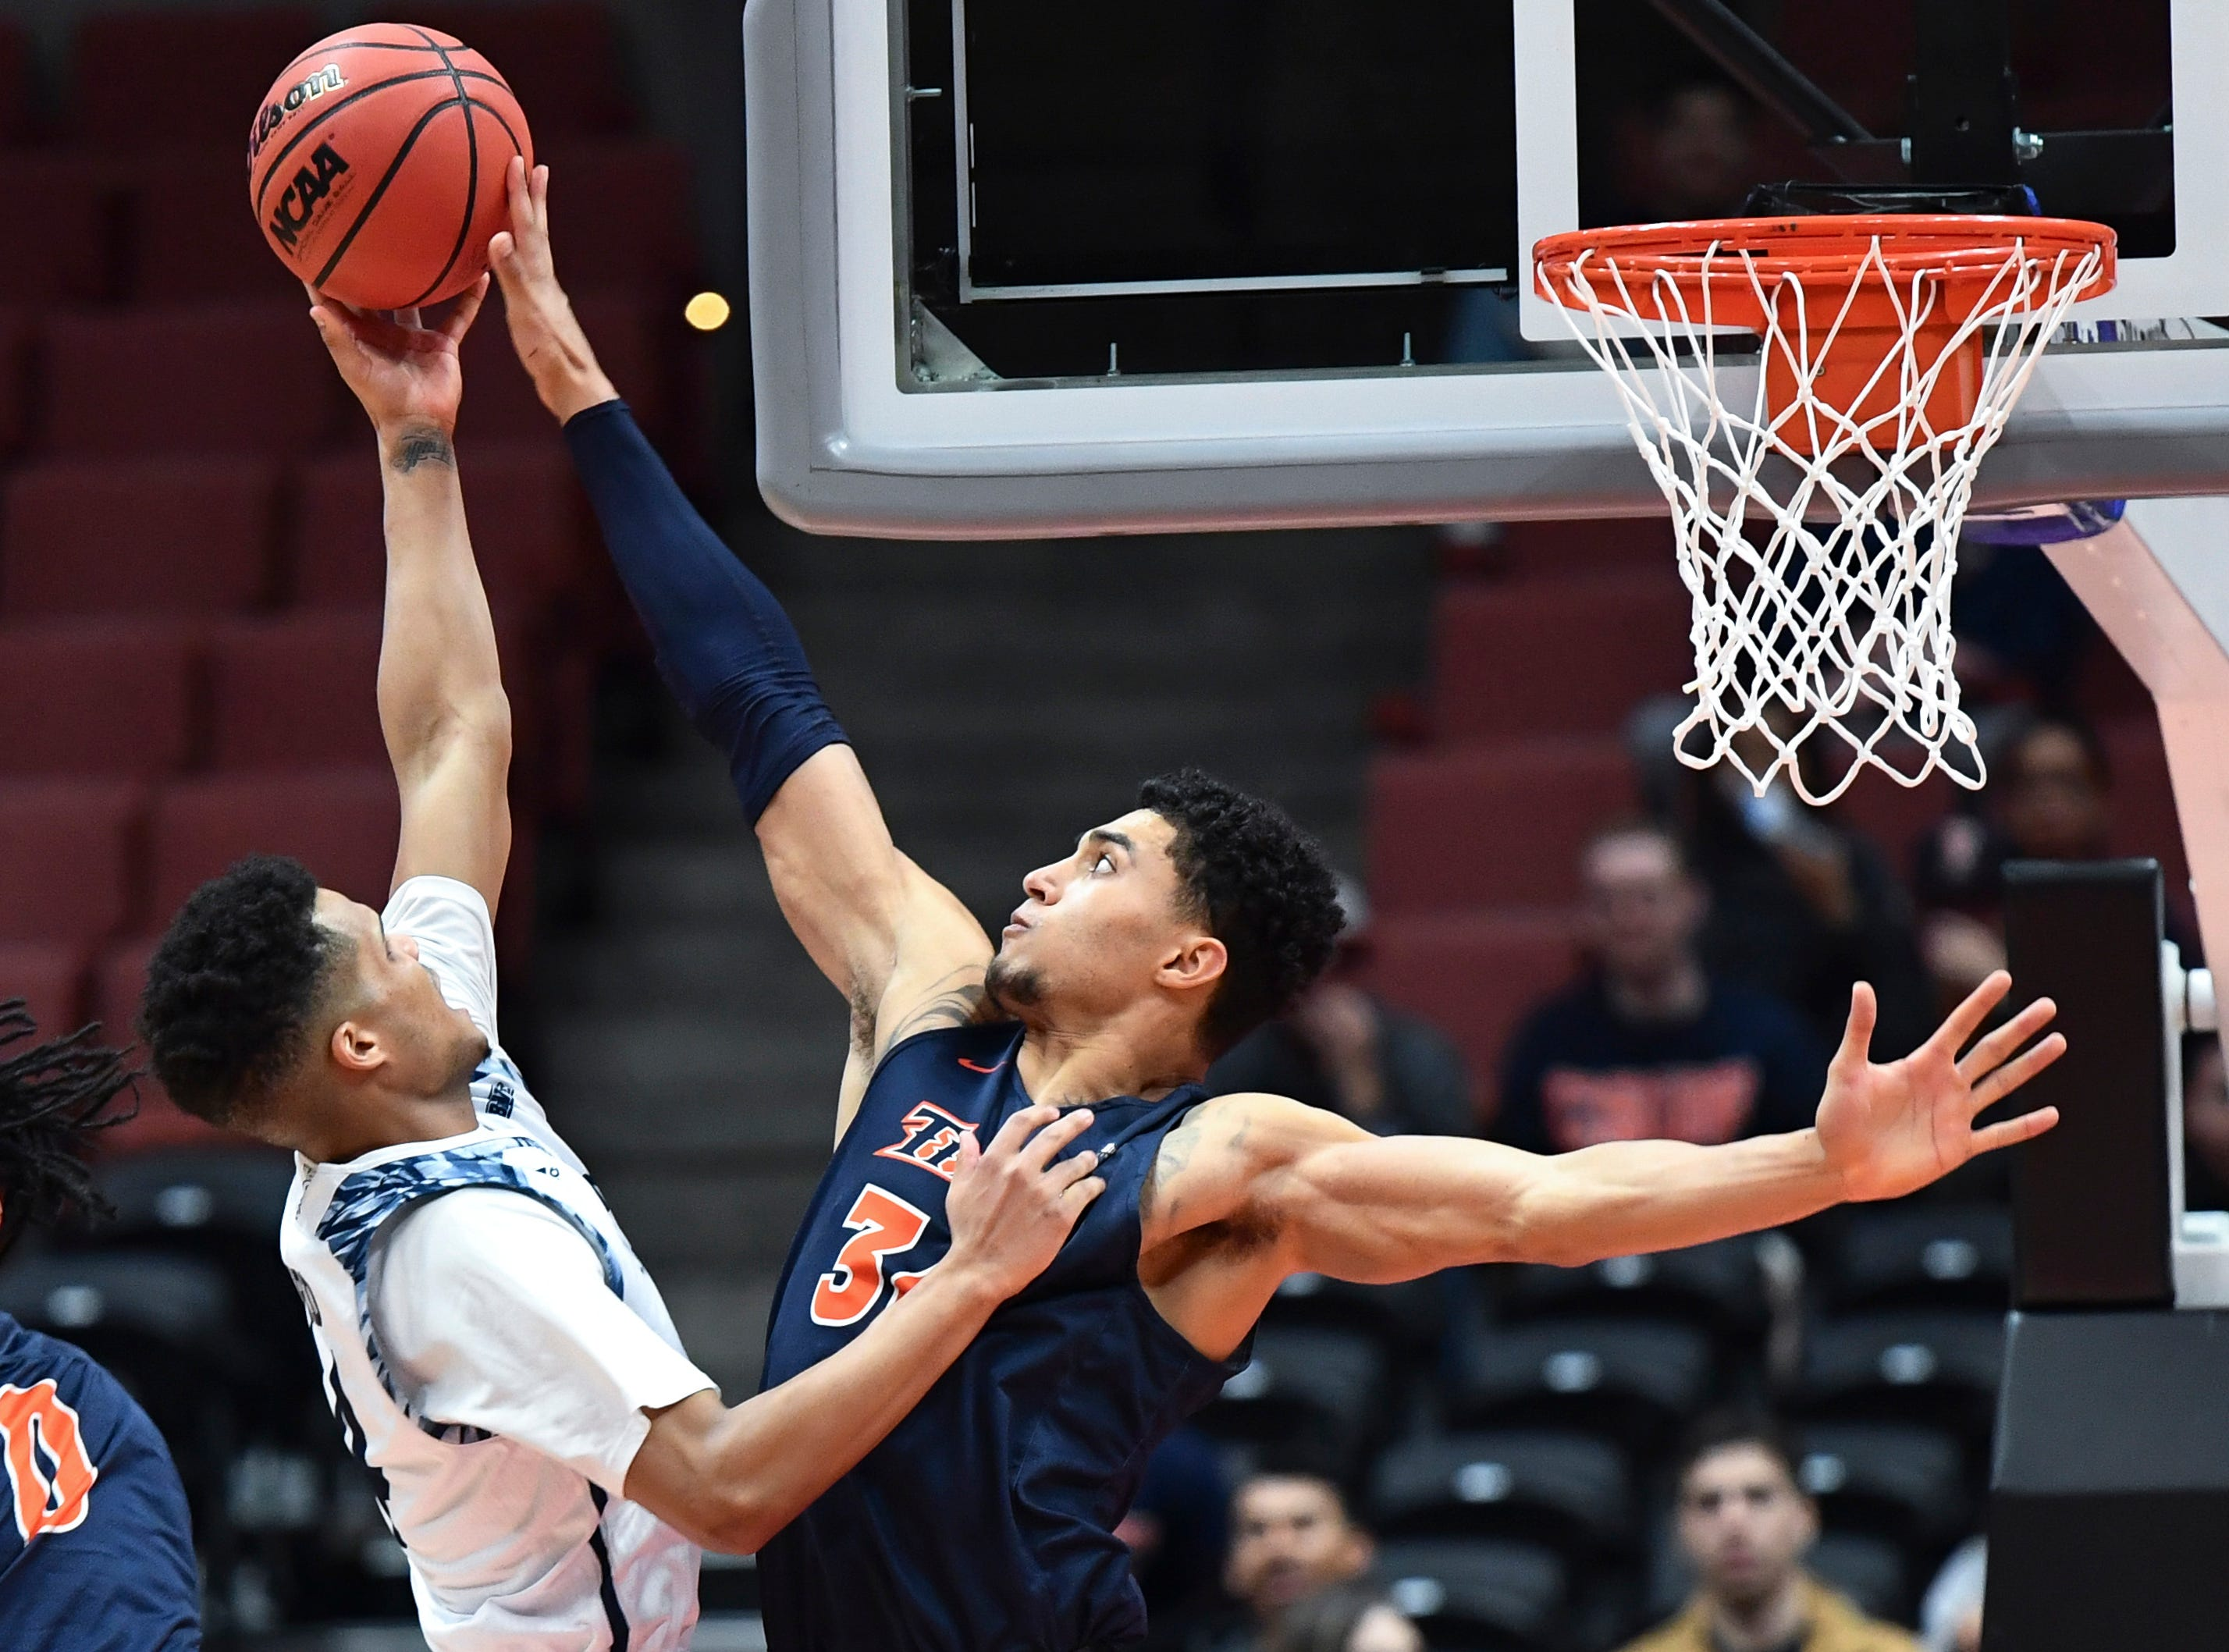 March: Cal State Fullerton Titans forward Jackson Rowe (34) blocks a shot by UC Irvine Anteaters guard Evan Leonard (14) during the first half of the Big West final.